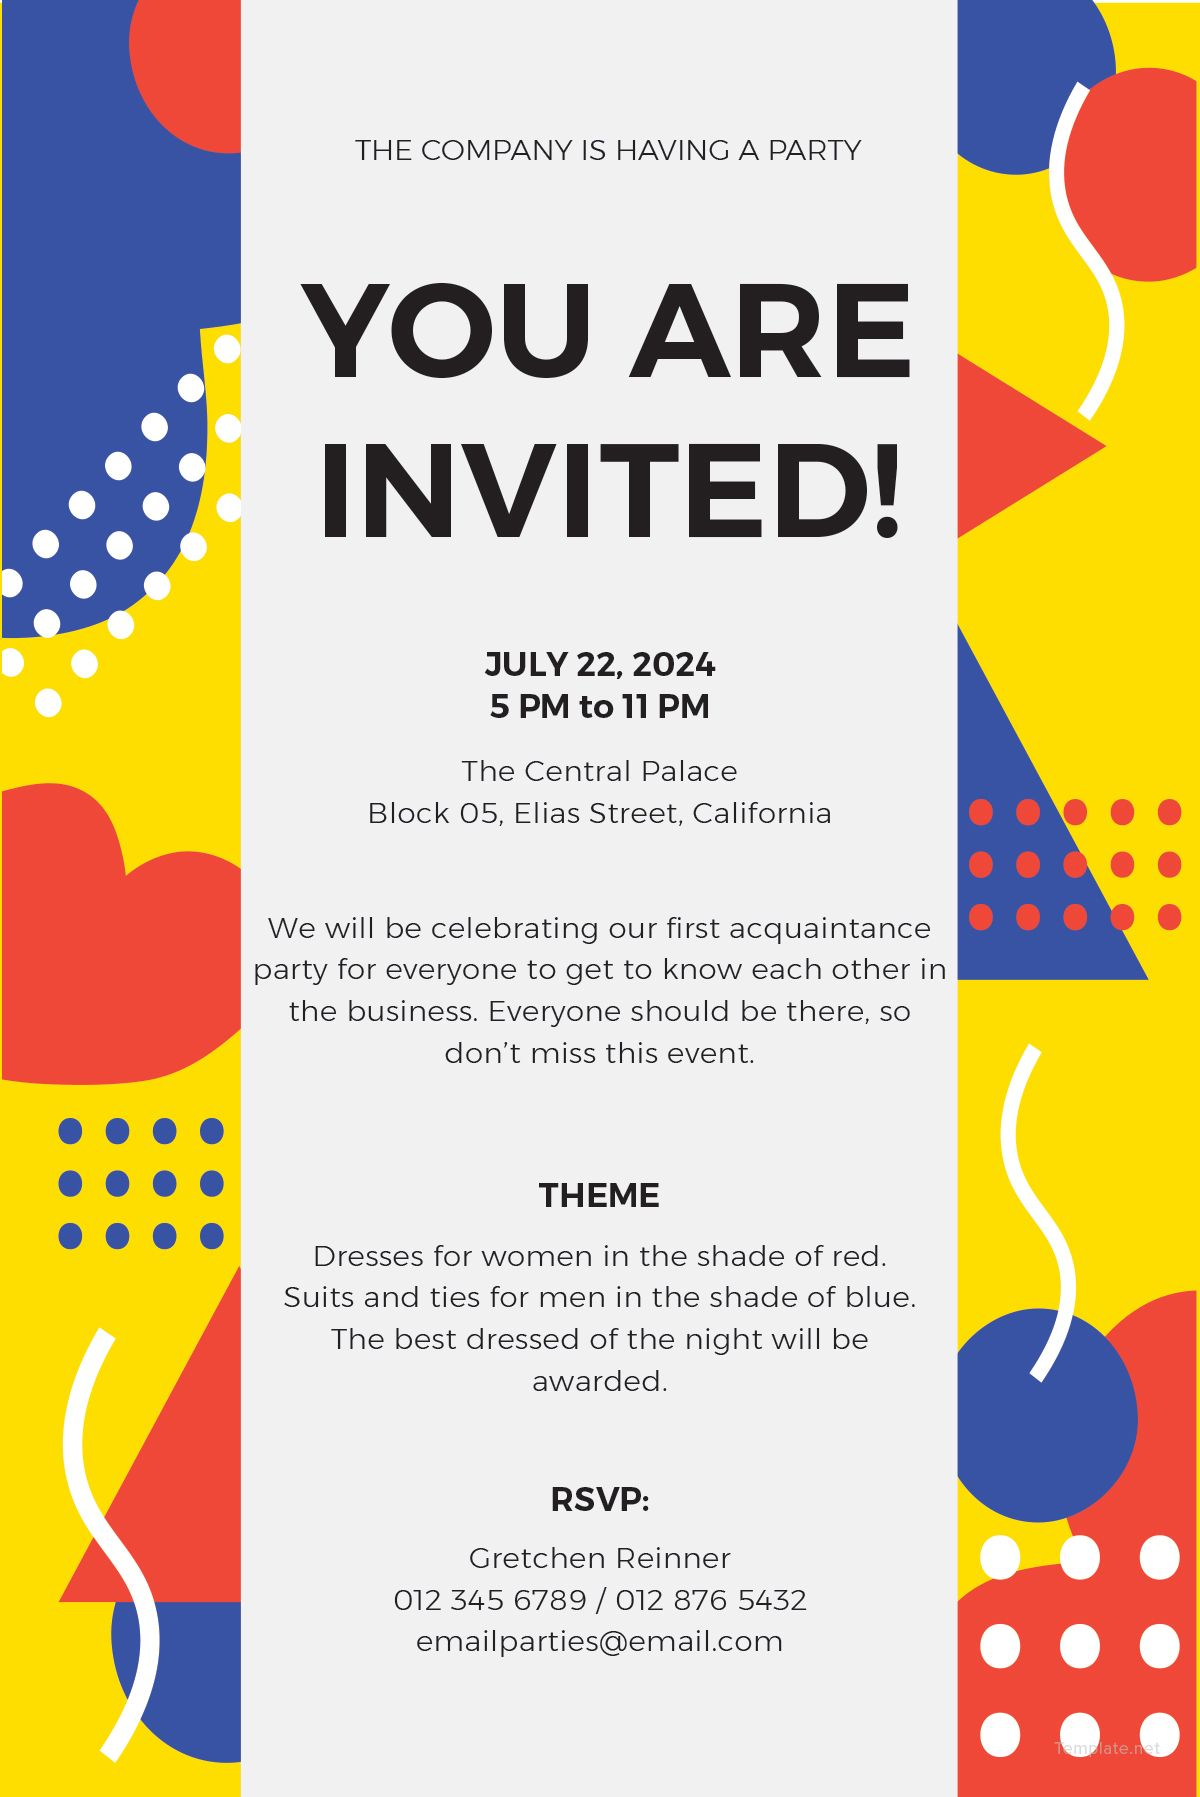 FREE Email Party Invitation Template - Word (DOC)  PSD  InDesign